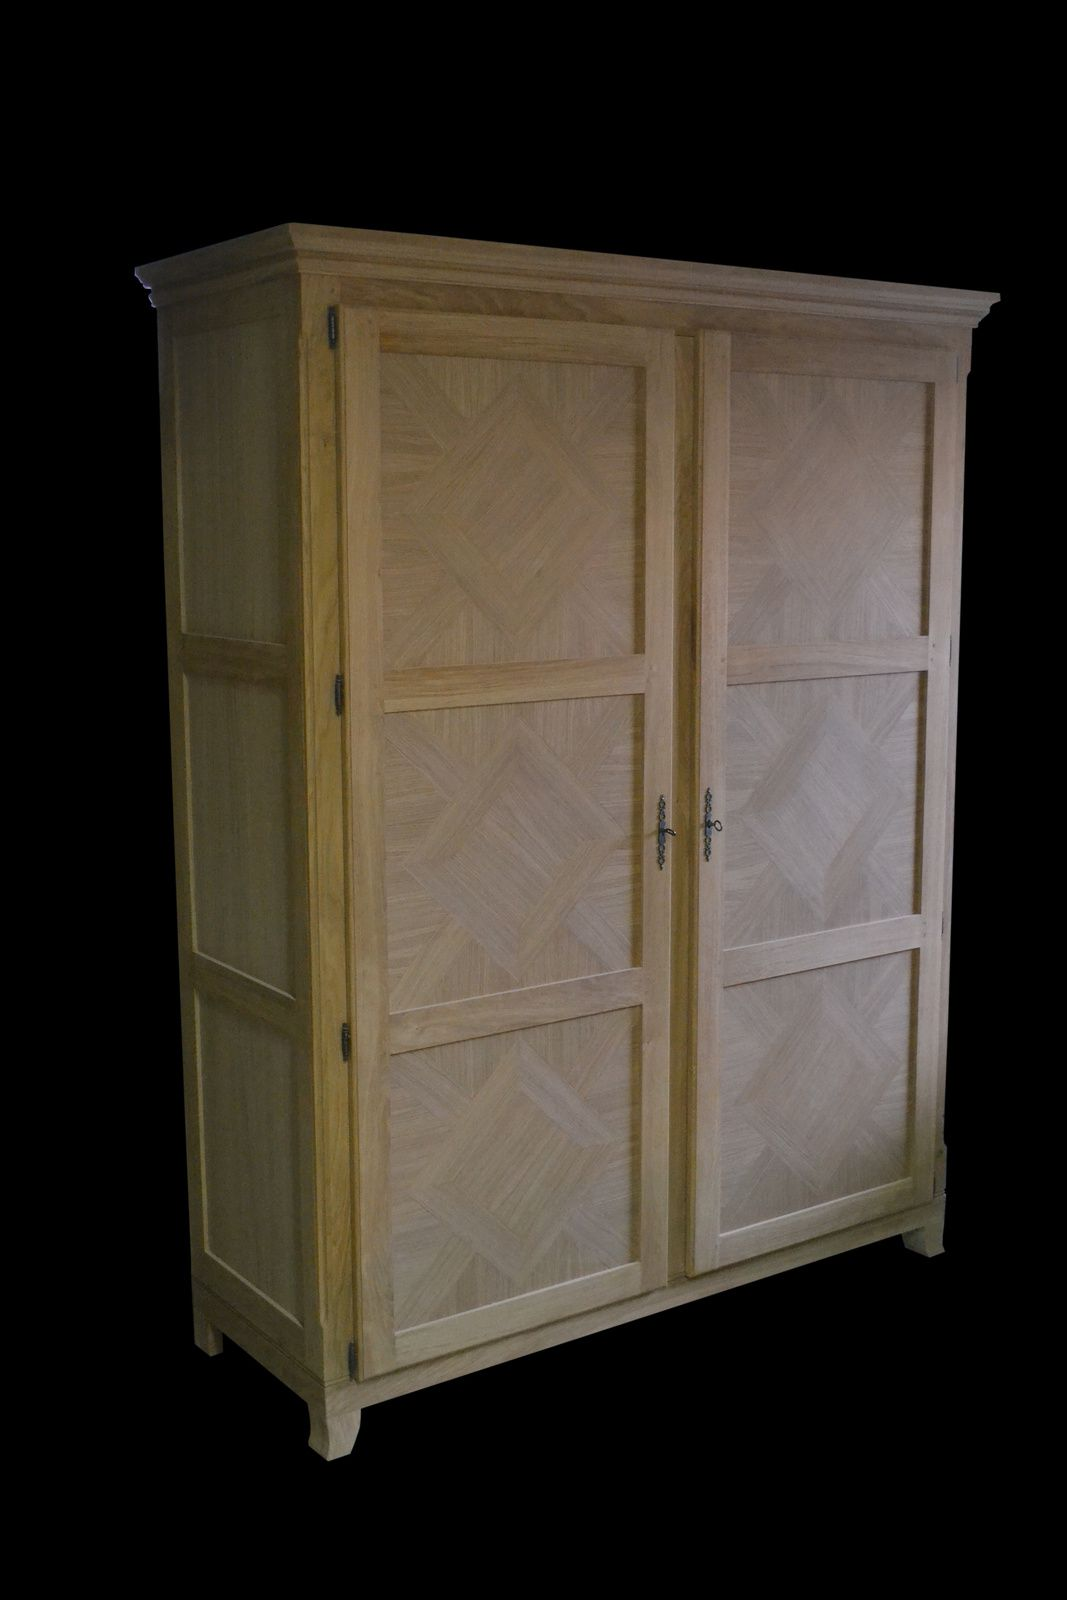 armoire penderie ch ne et marqueterie de ch ne armarbois. Black Bedroom Furniture Sets. Home Design Ideas